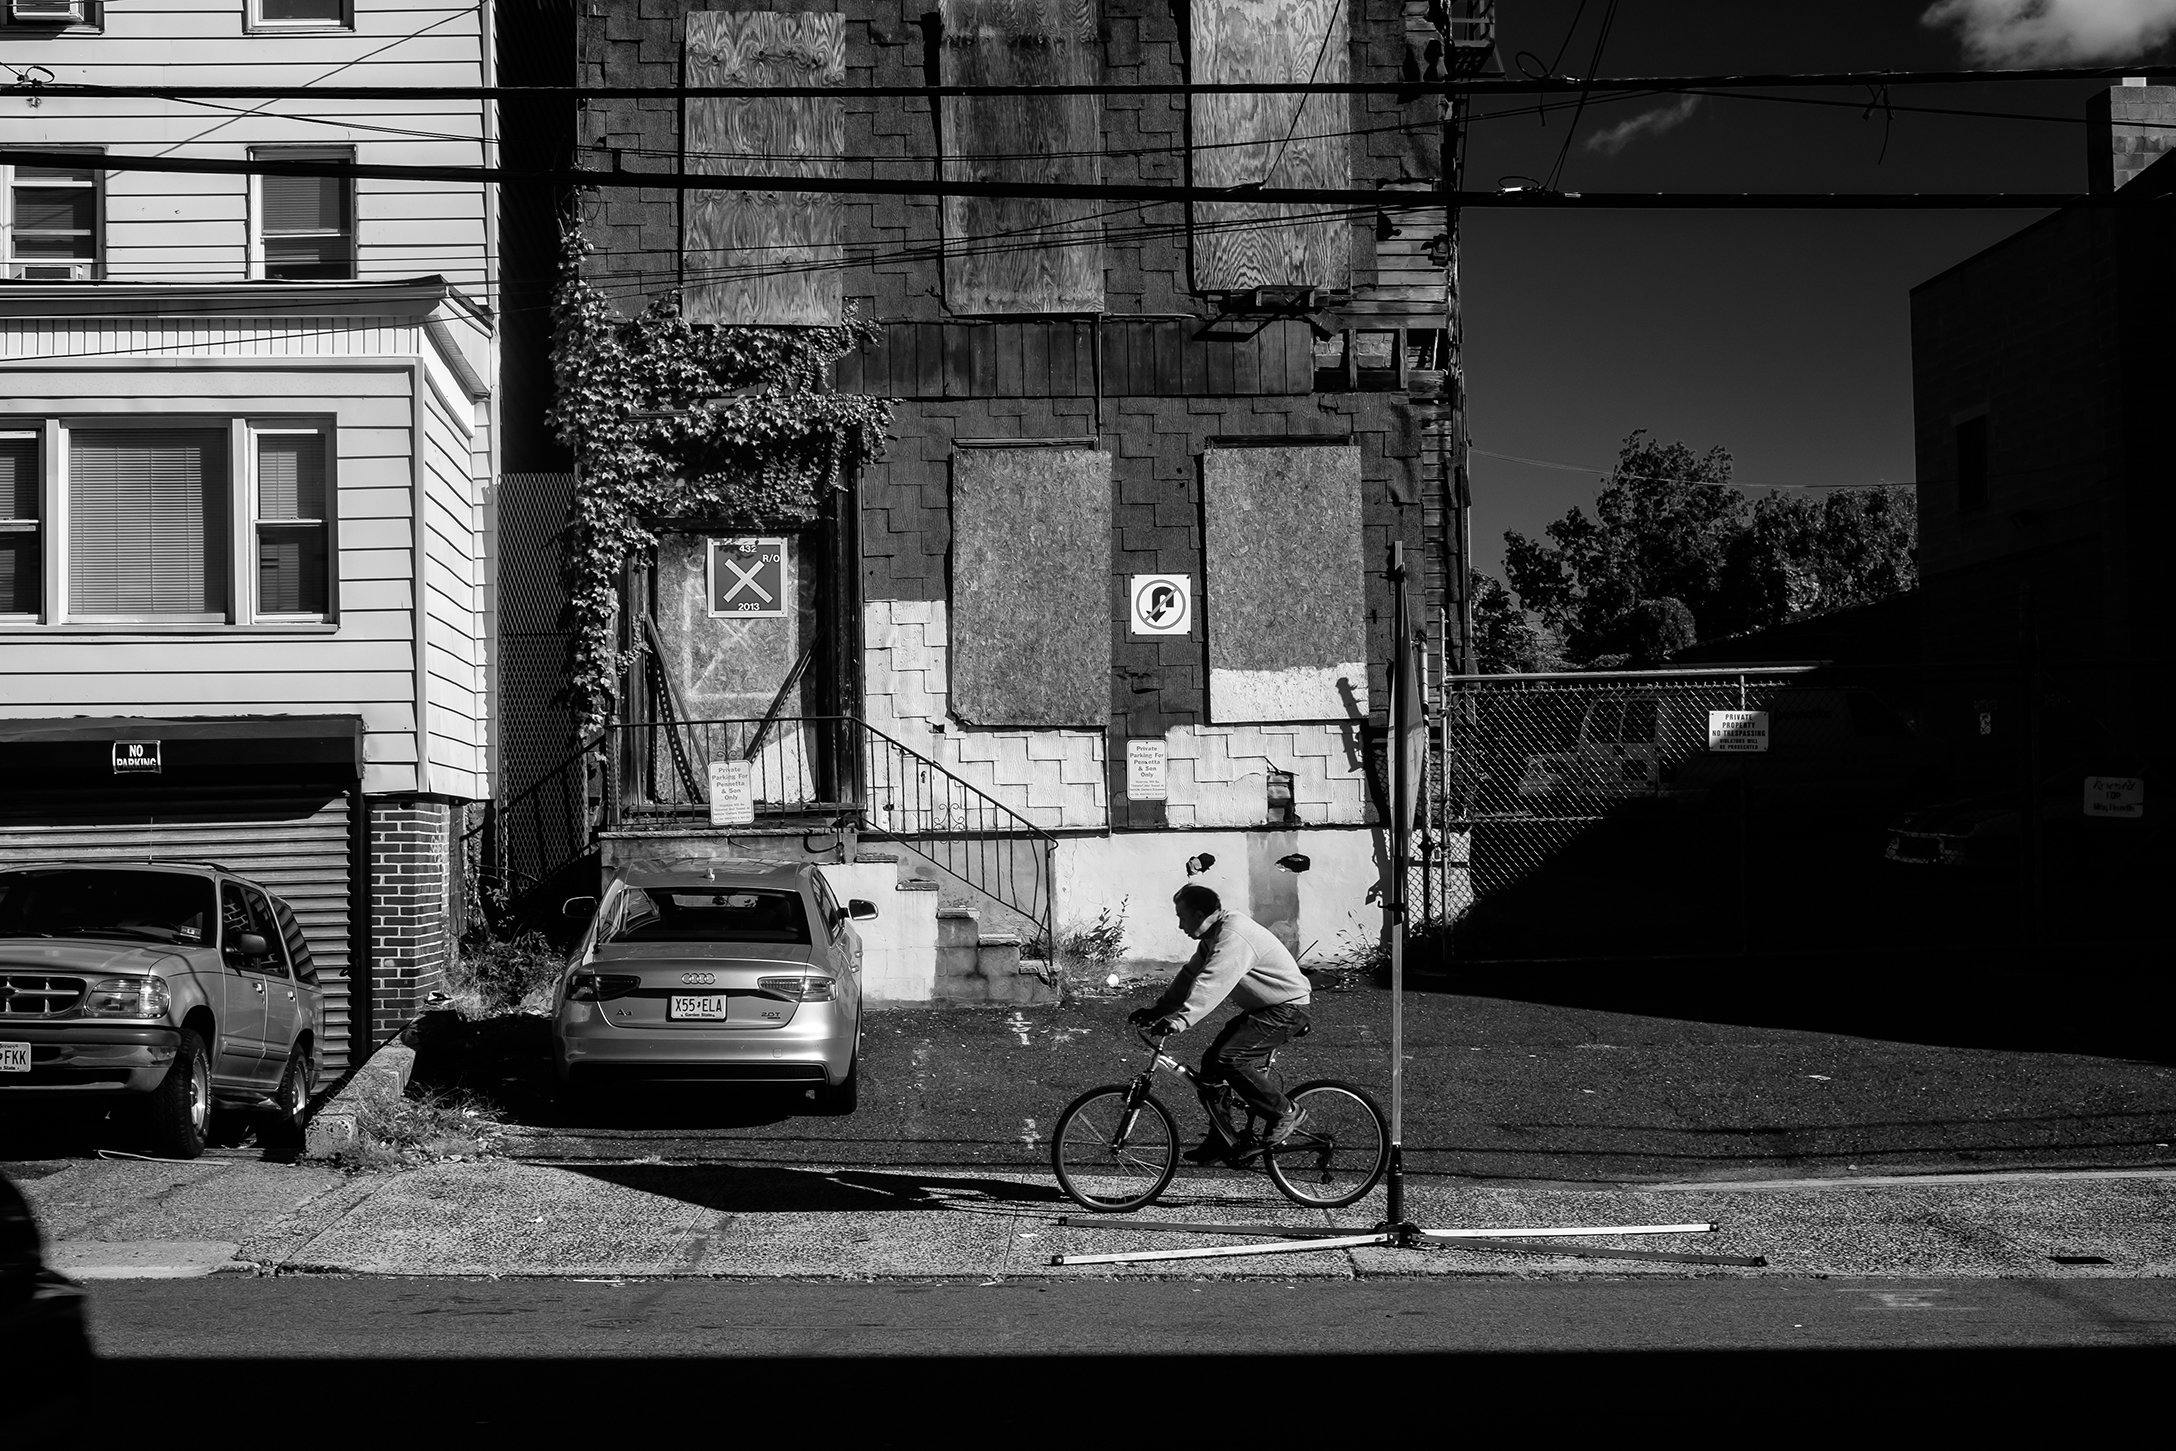 Man on bike rides past abandoned building.jpg